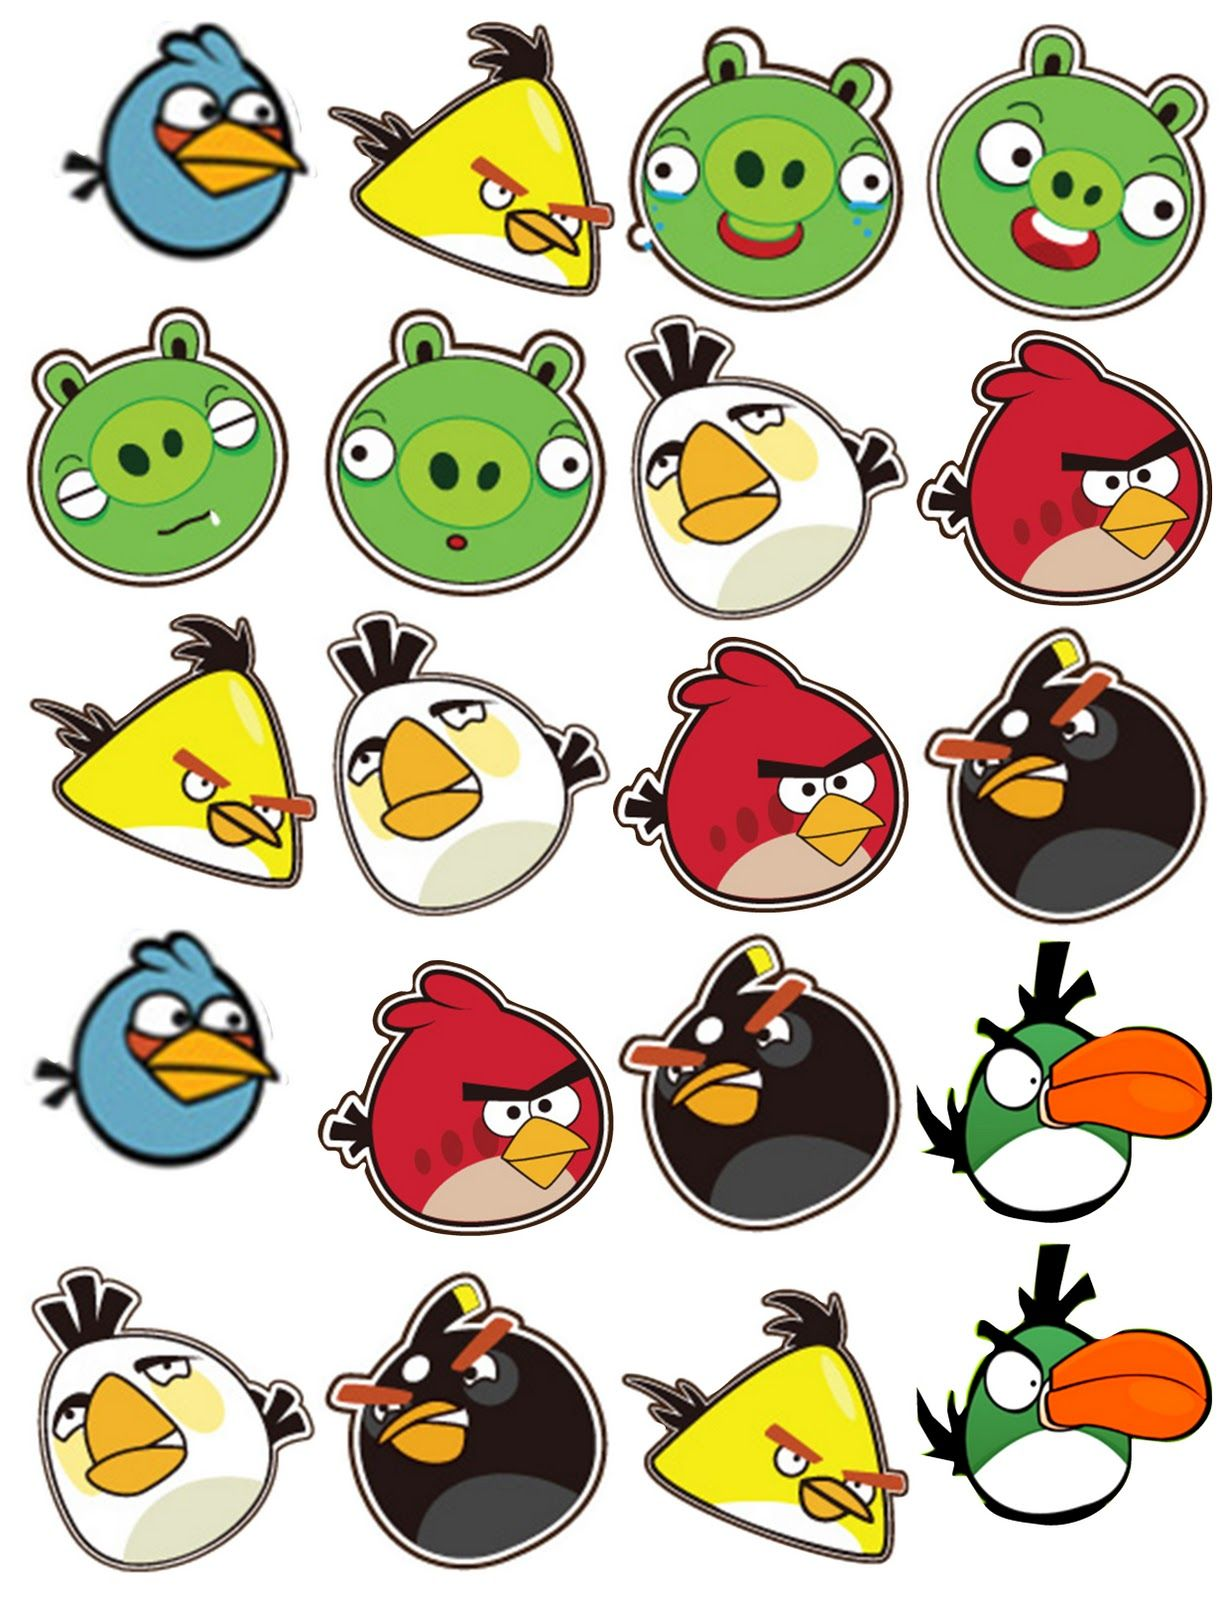 Angry bird clipart can be used for a verioty of party ideas from.